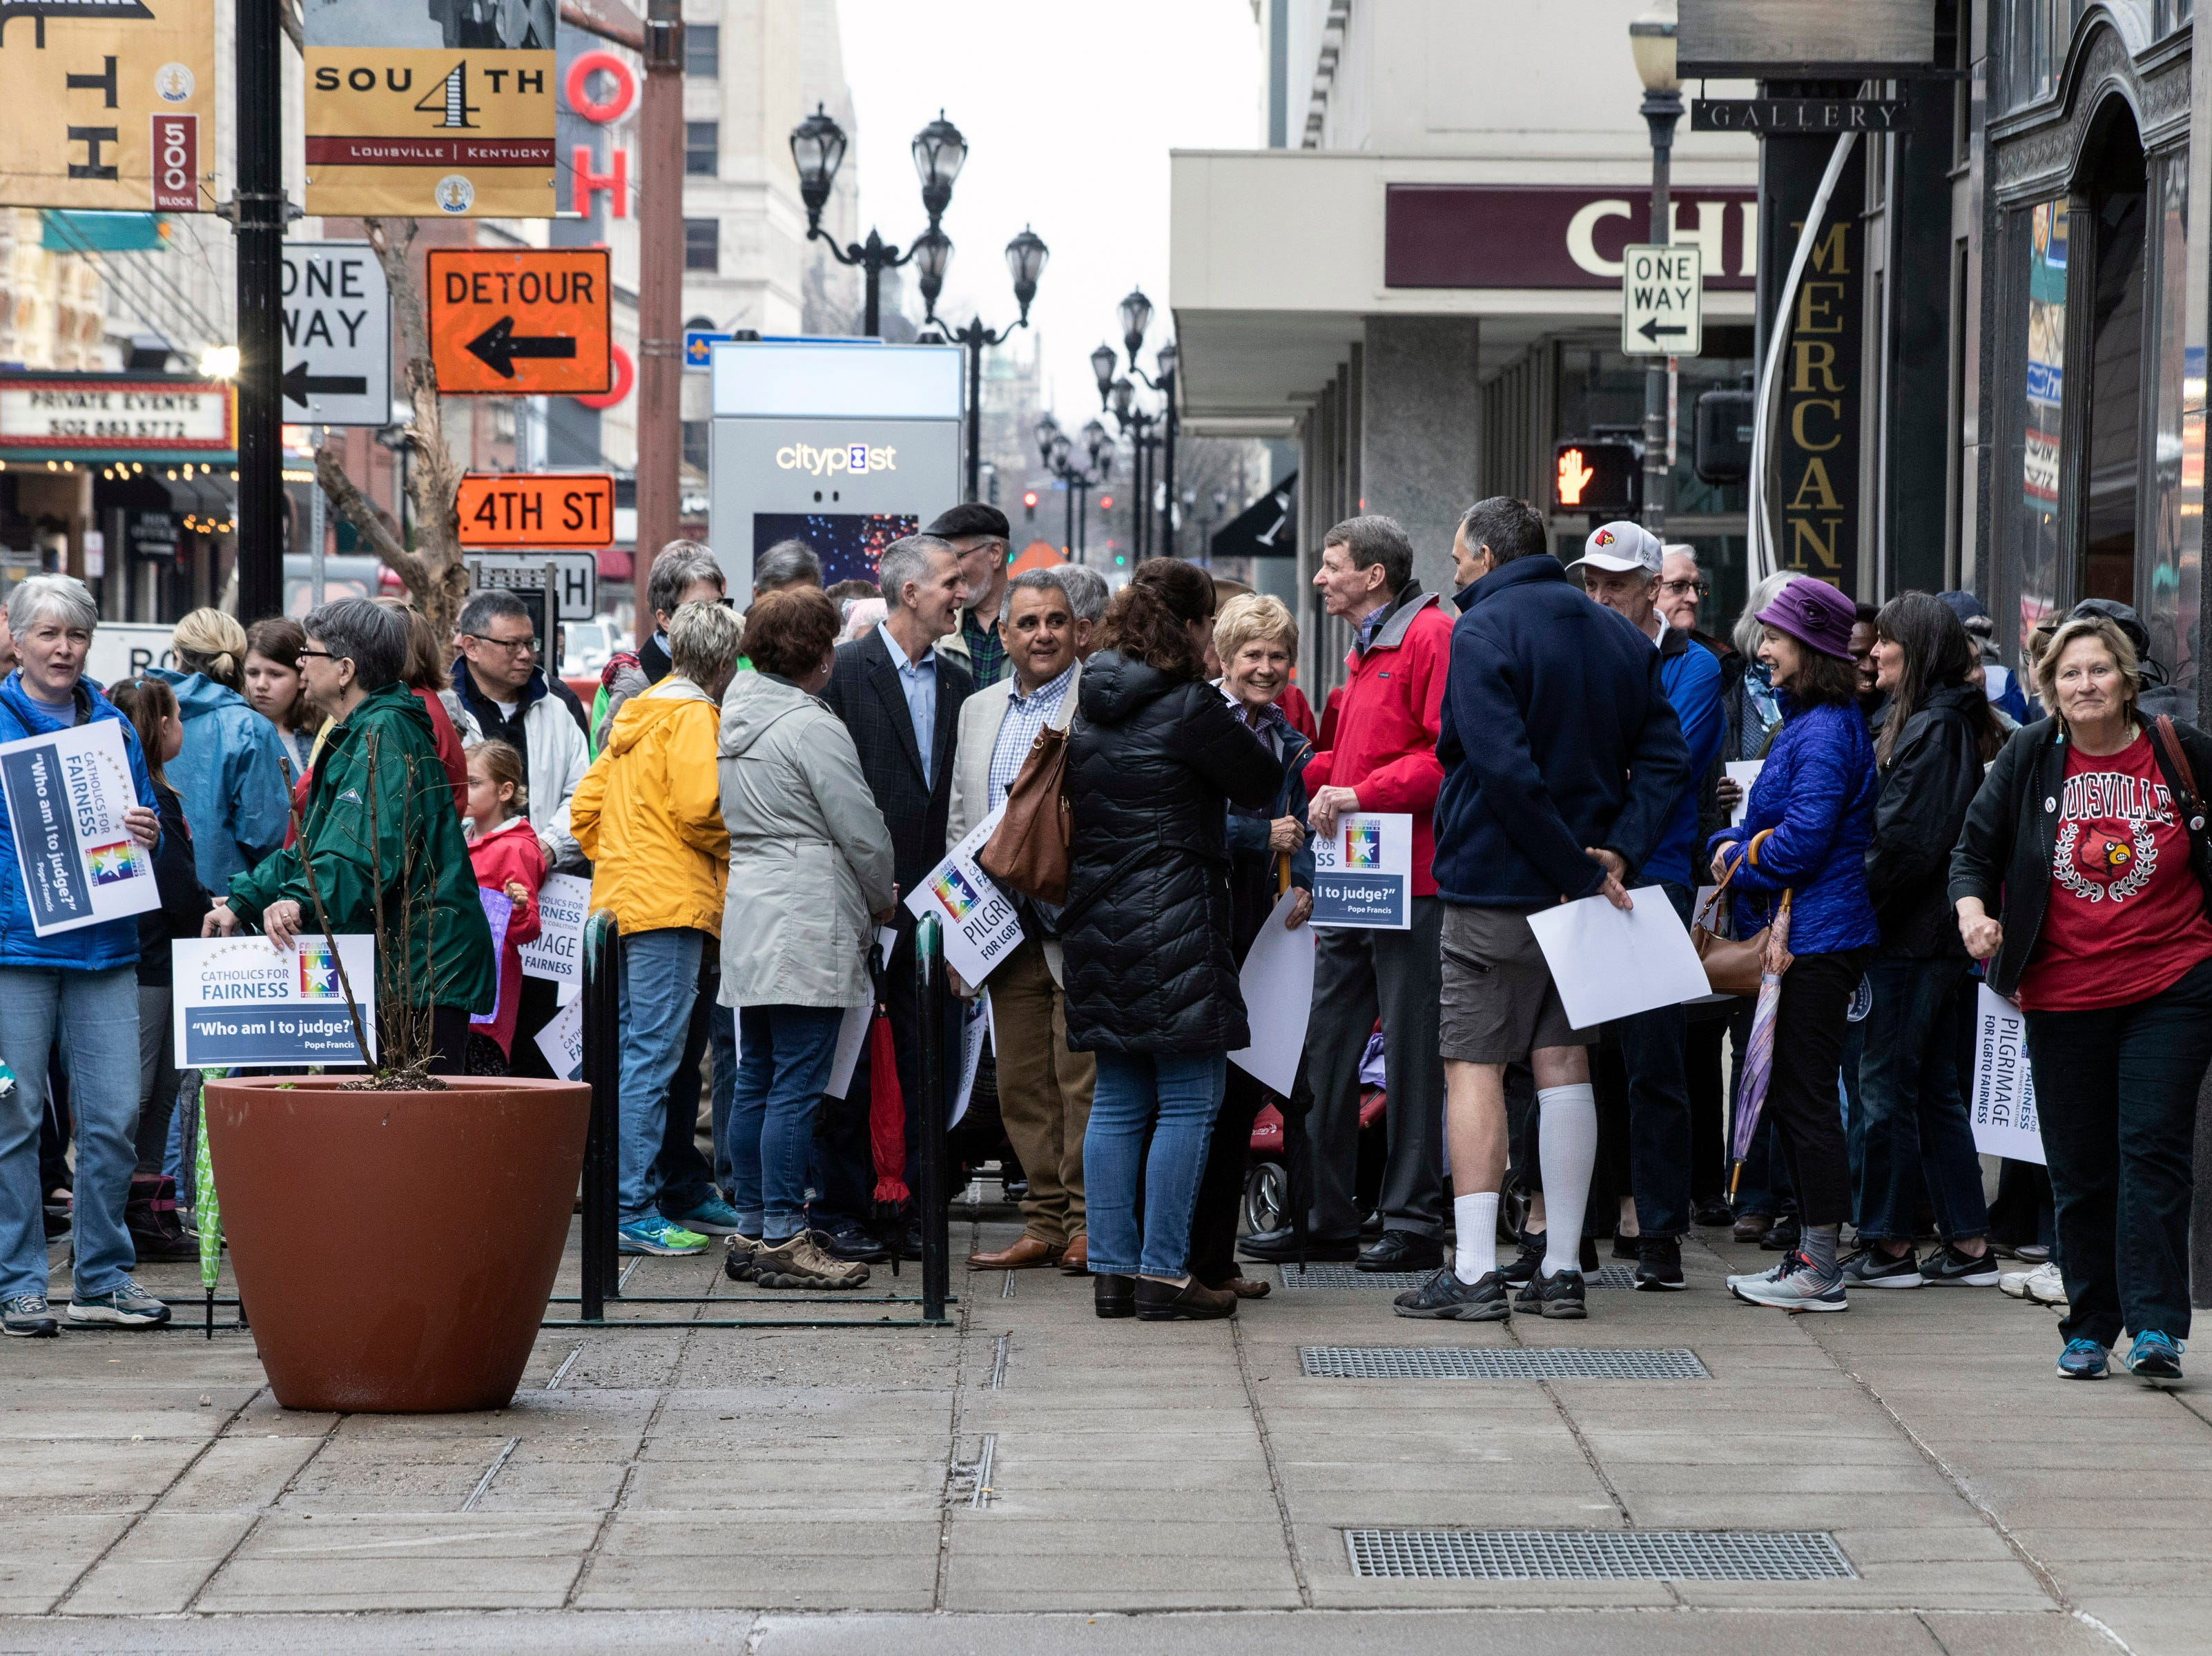 Participants in the annual Catholics for Fairness Pilgrimage met at the Volunteers of America on South Fourth Street Sunday before marching to the Cathedral of the Assumption for mass. March 24, 2019